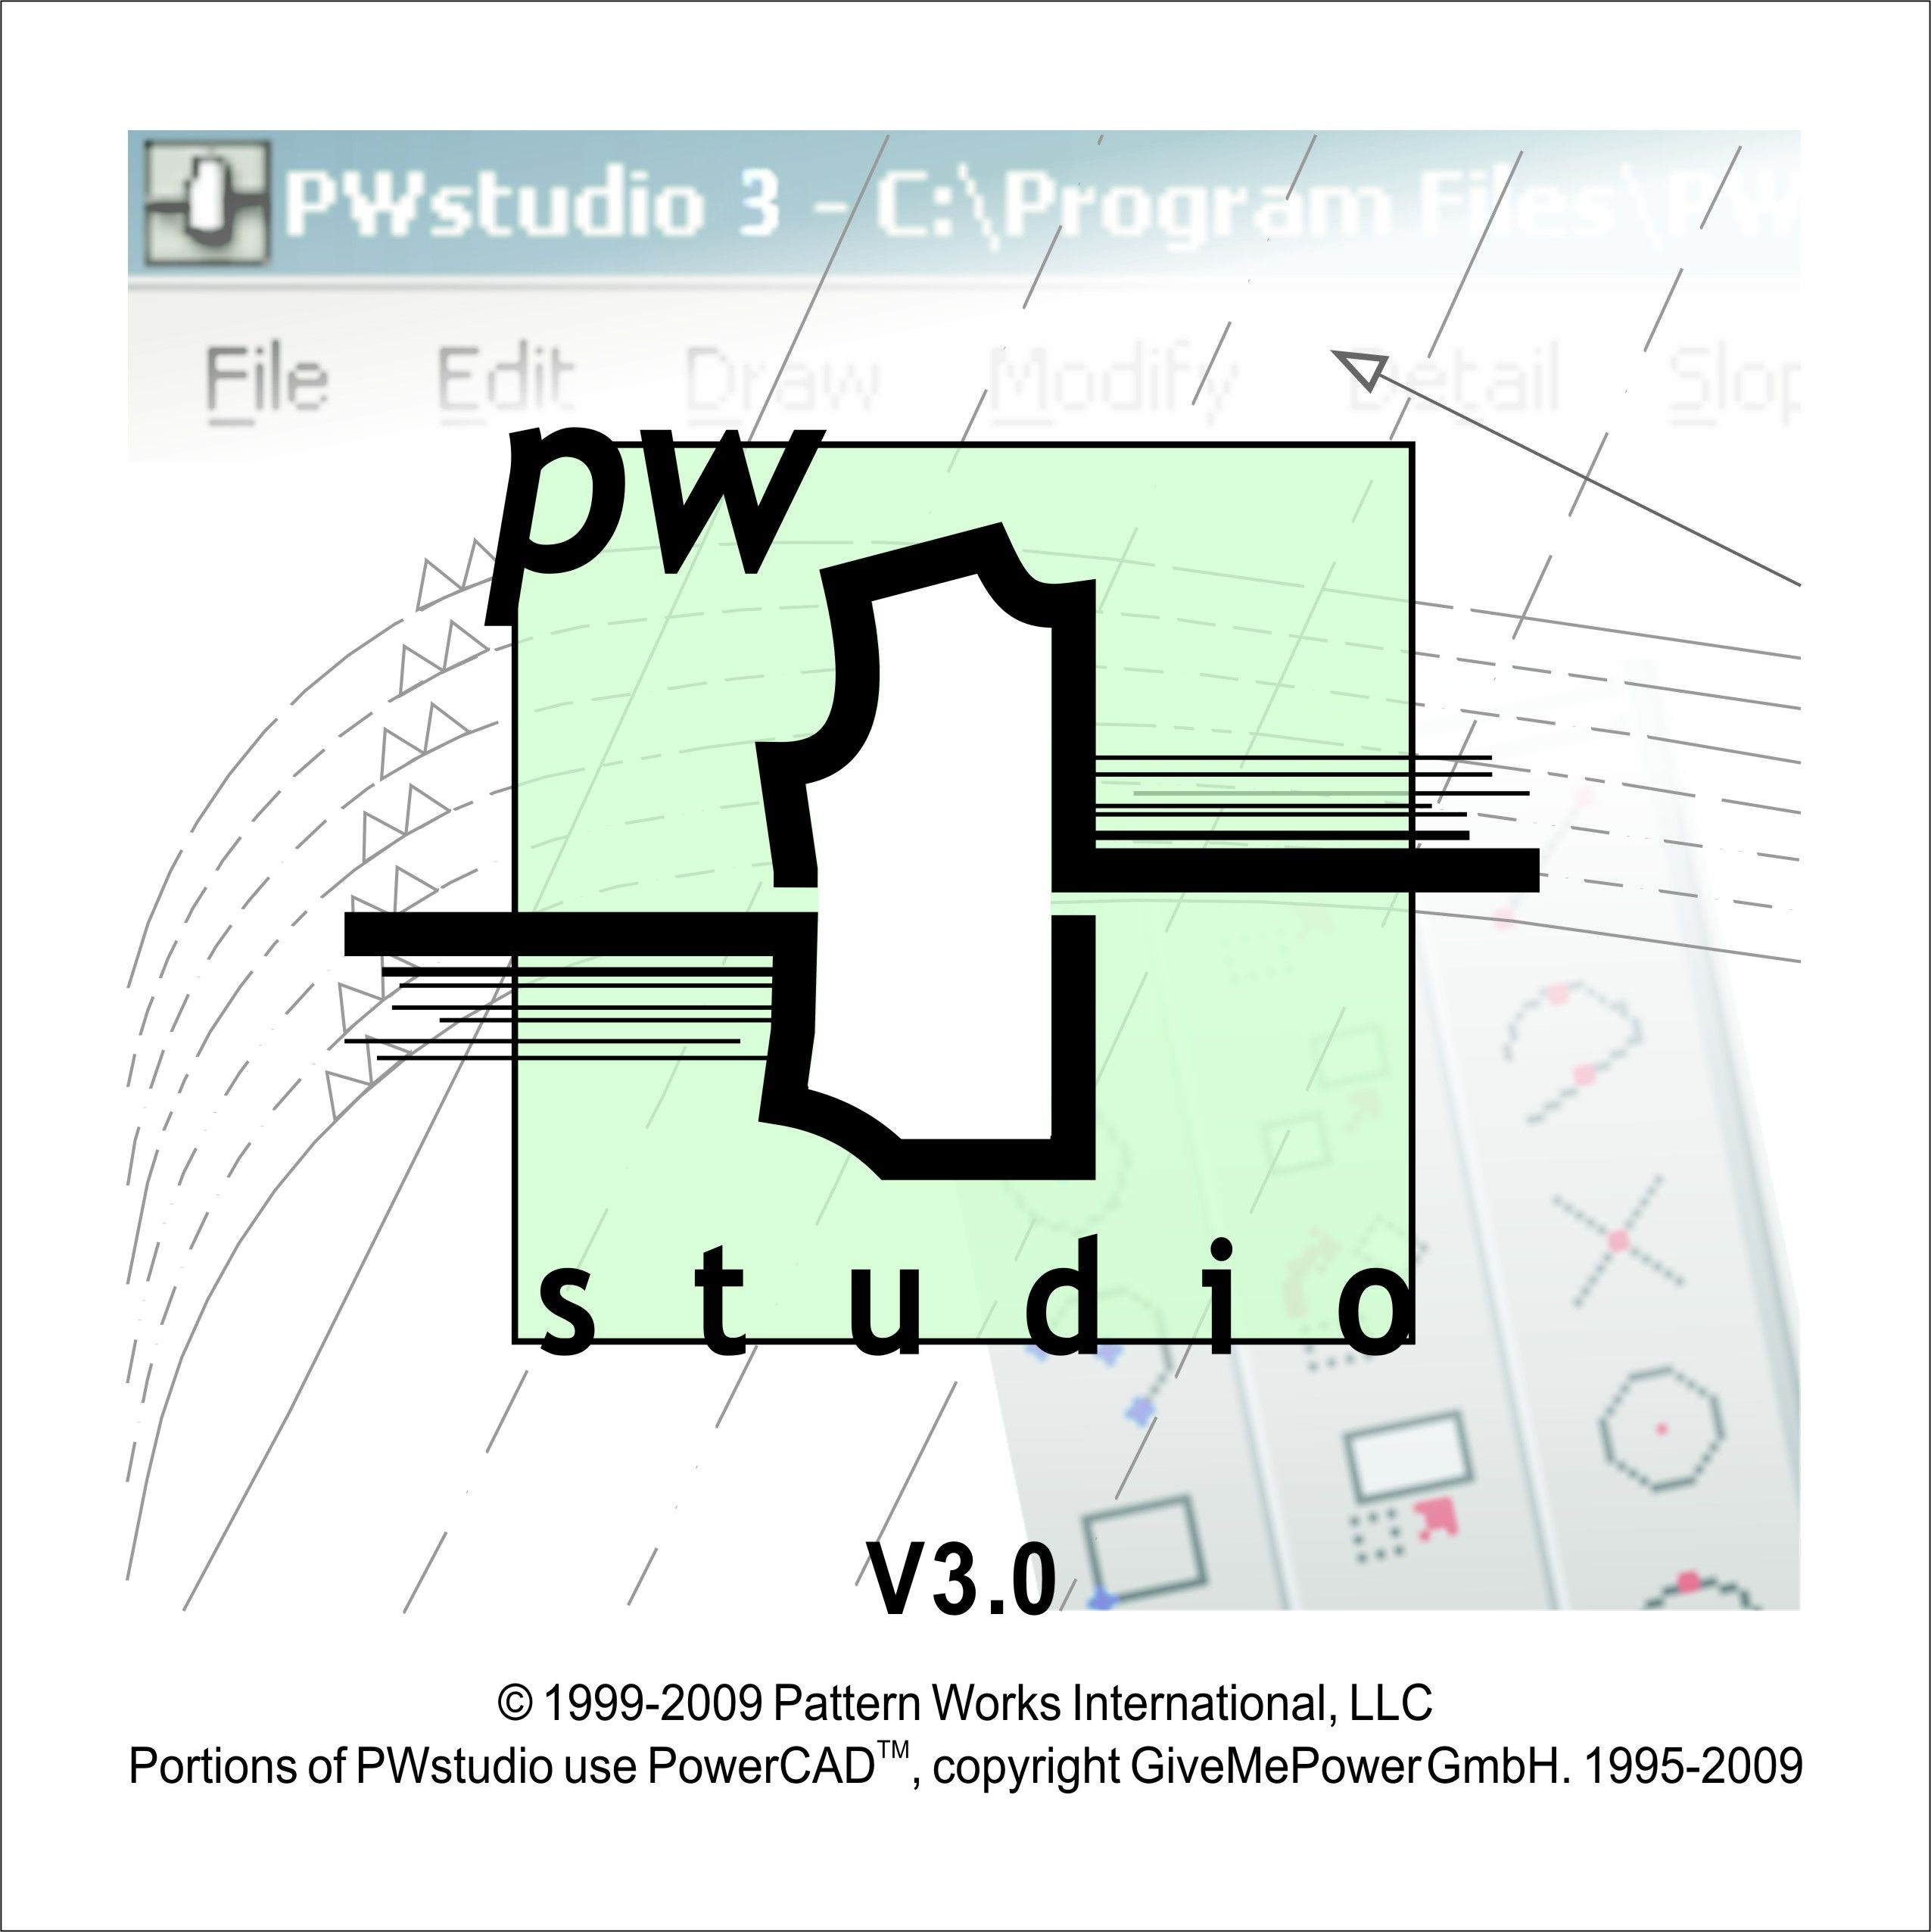 PWSTUDIO 3 SOFTWARE TRIAL DISK from the Center for Pattern Design ...